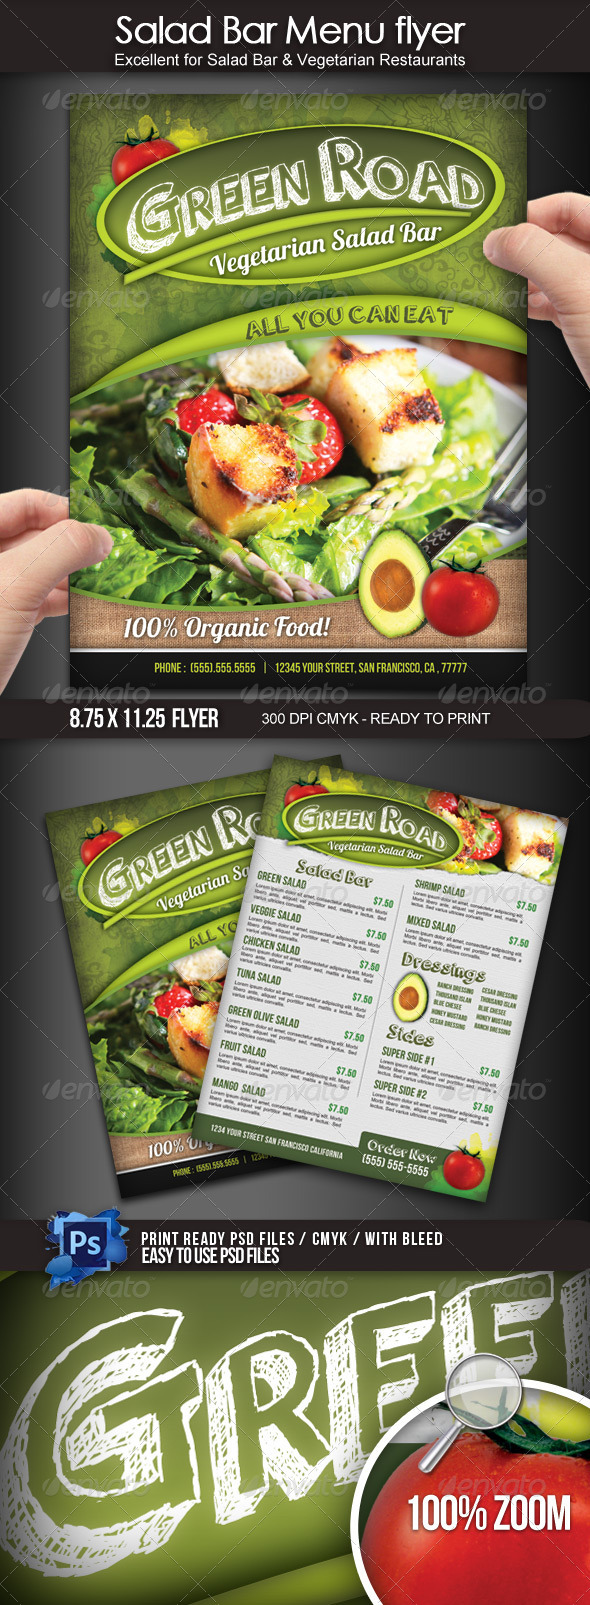 Vegan Graphics, Designs & Templates from GraphicRiver